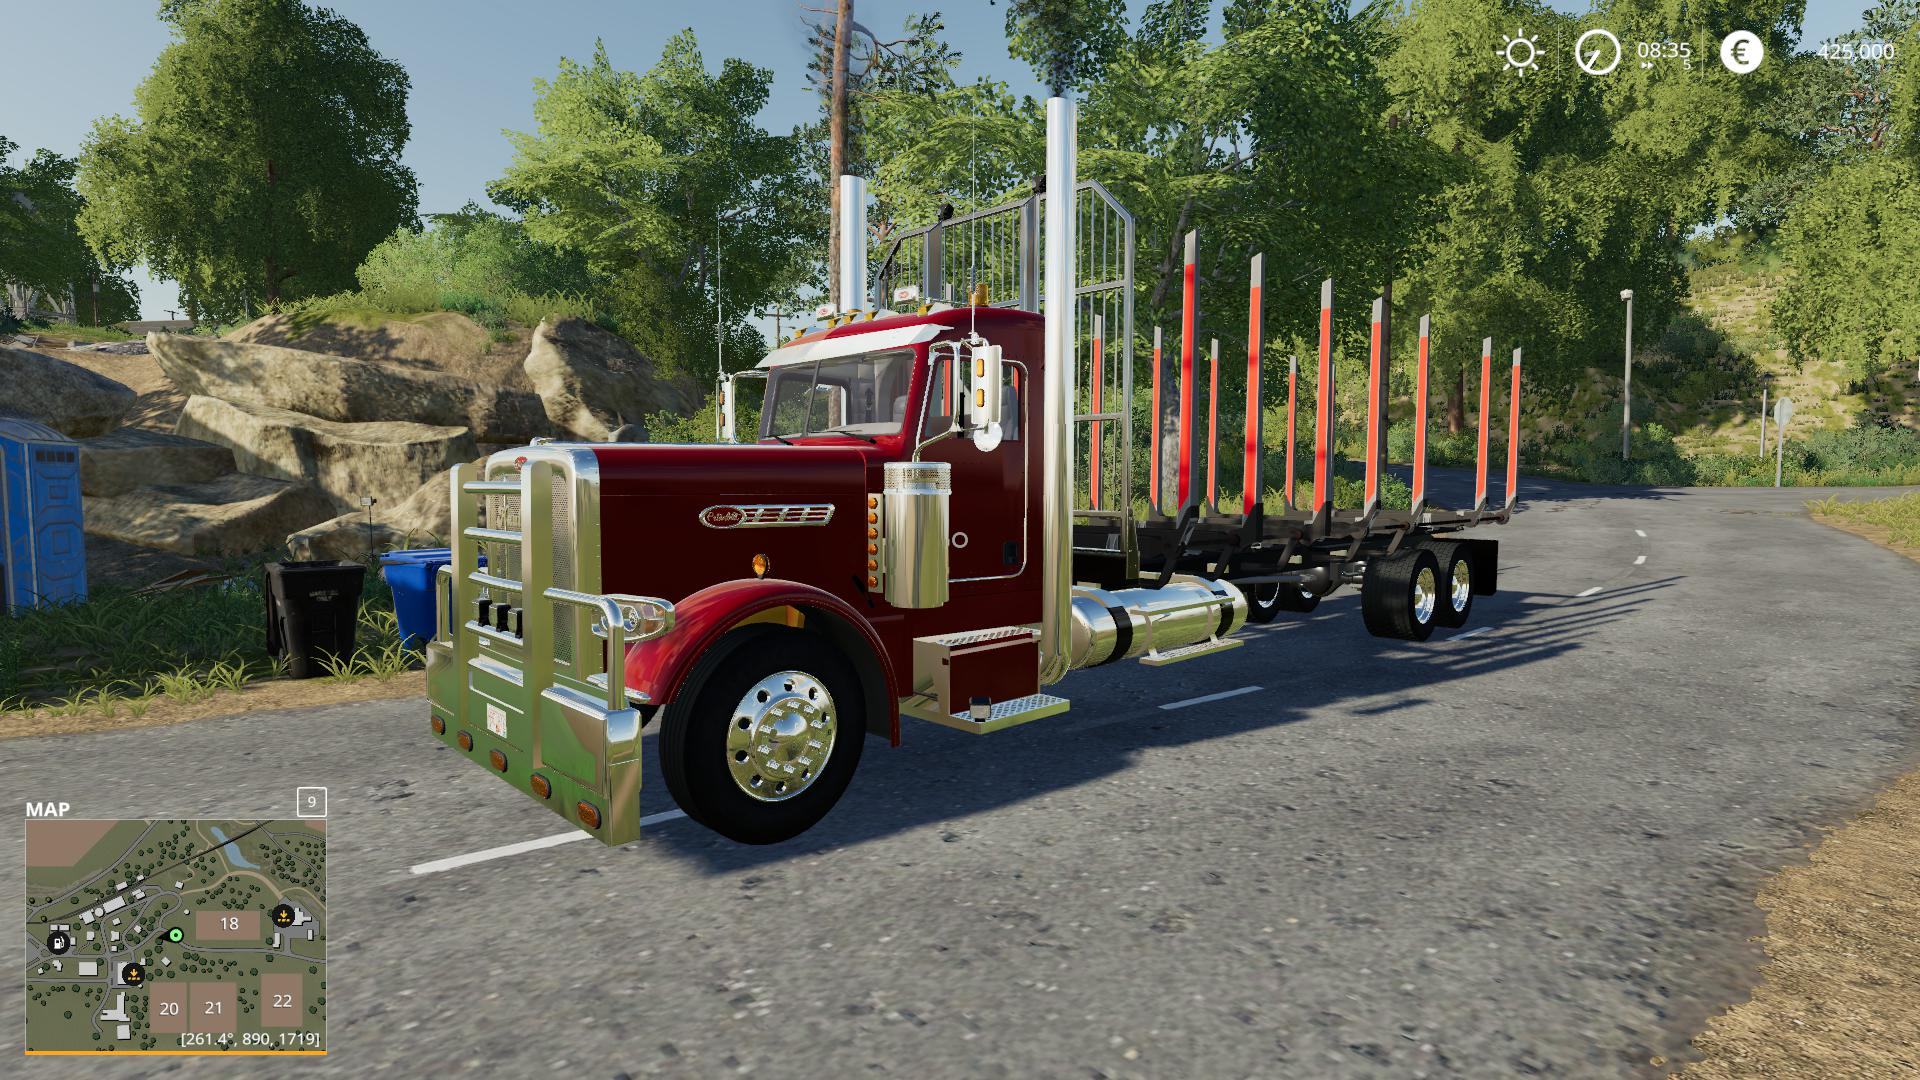 Peterbilt log truck v1 0 FS19 - Farming Simulator 19 Mod